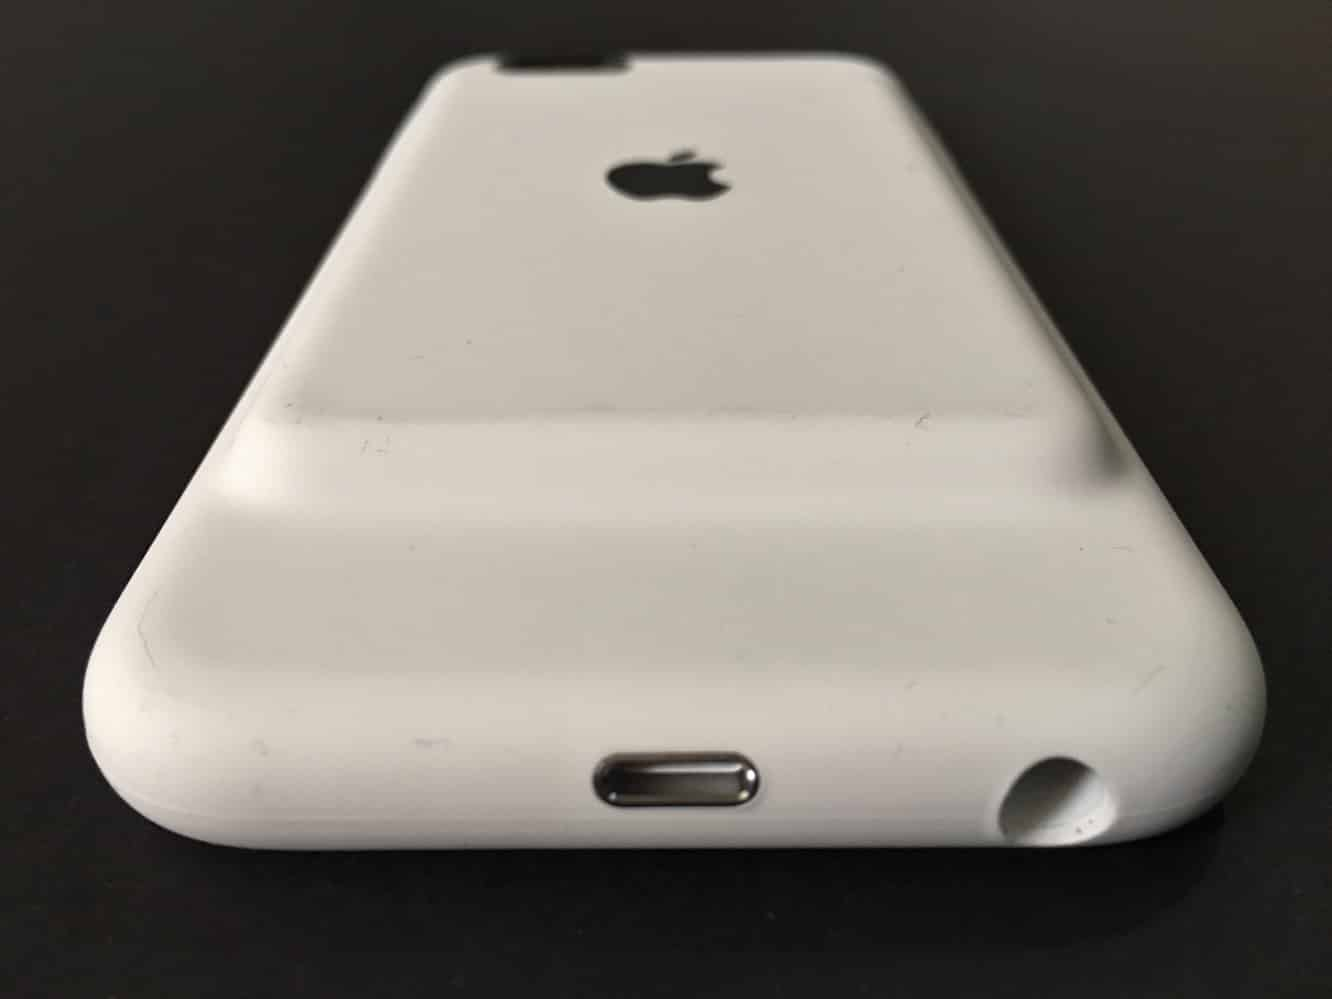 Review: Apple iPhone 6s Smart Battery Case